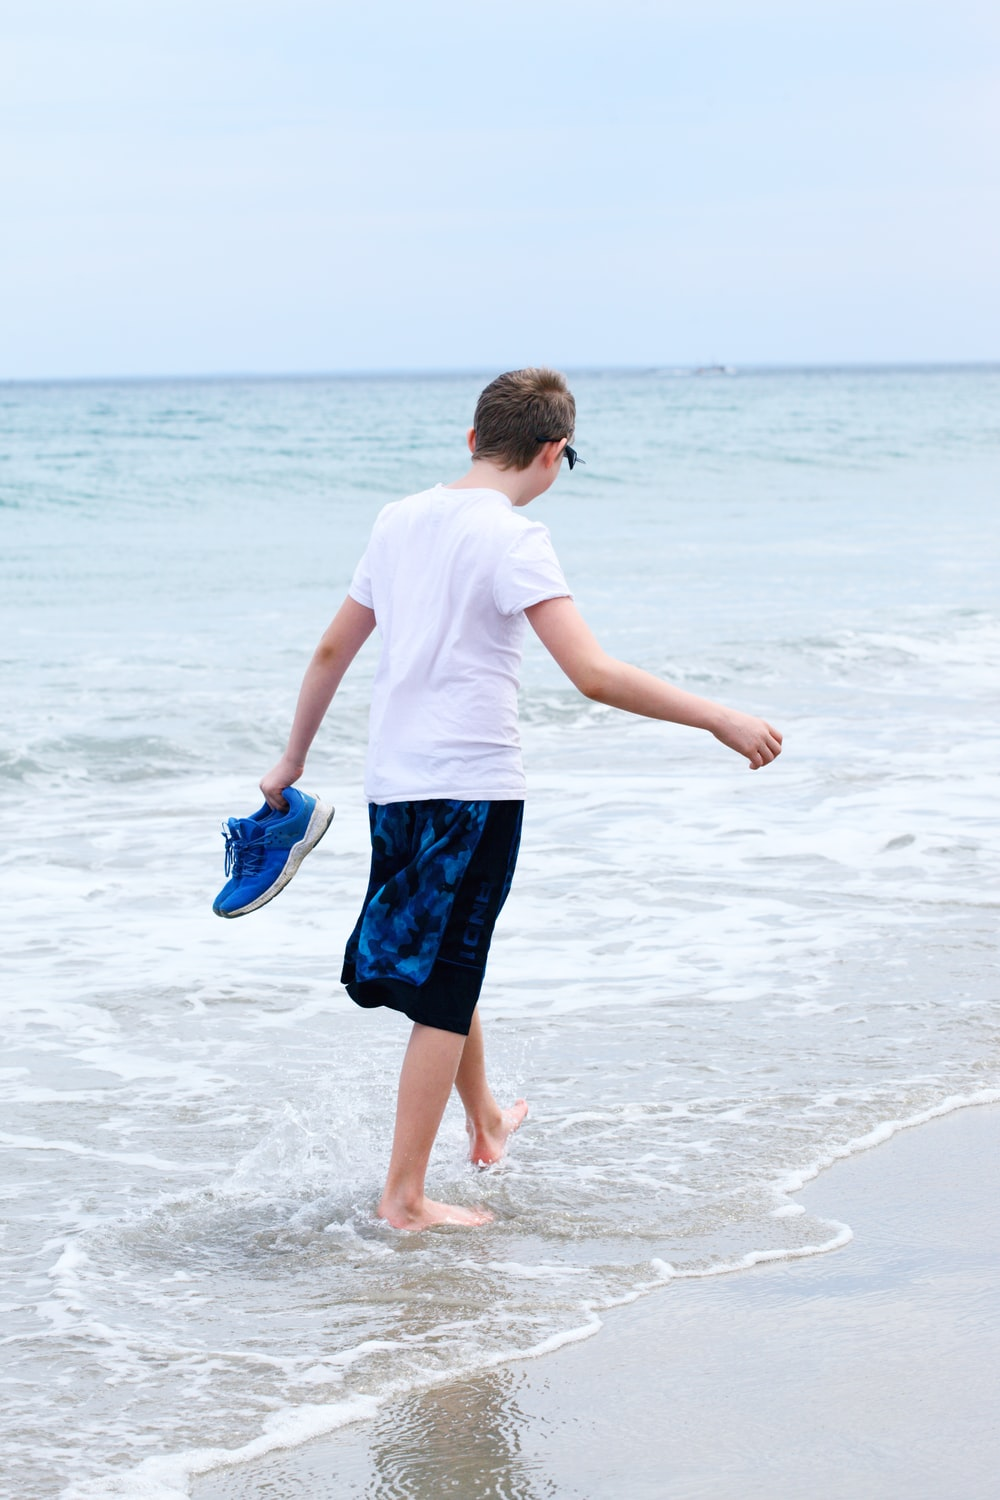 boy in white t-shirt and blue shorts running on beach during daytime